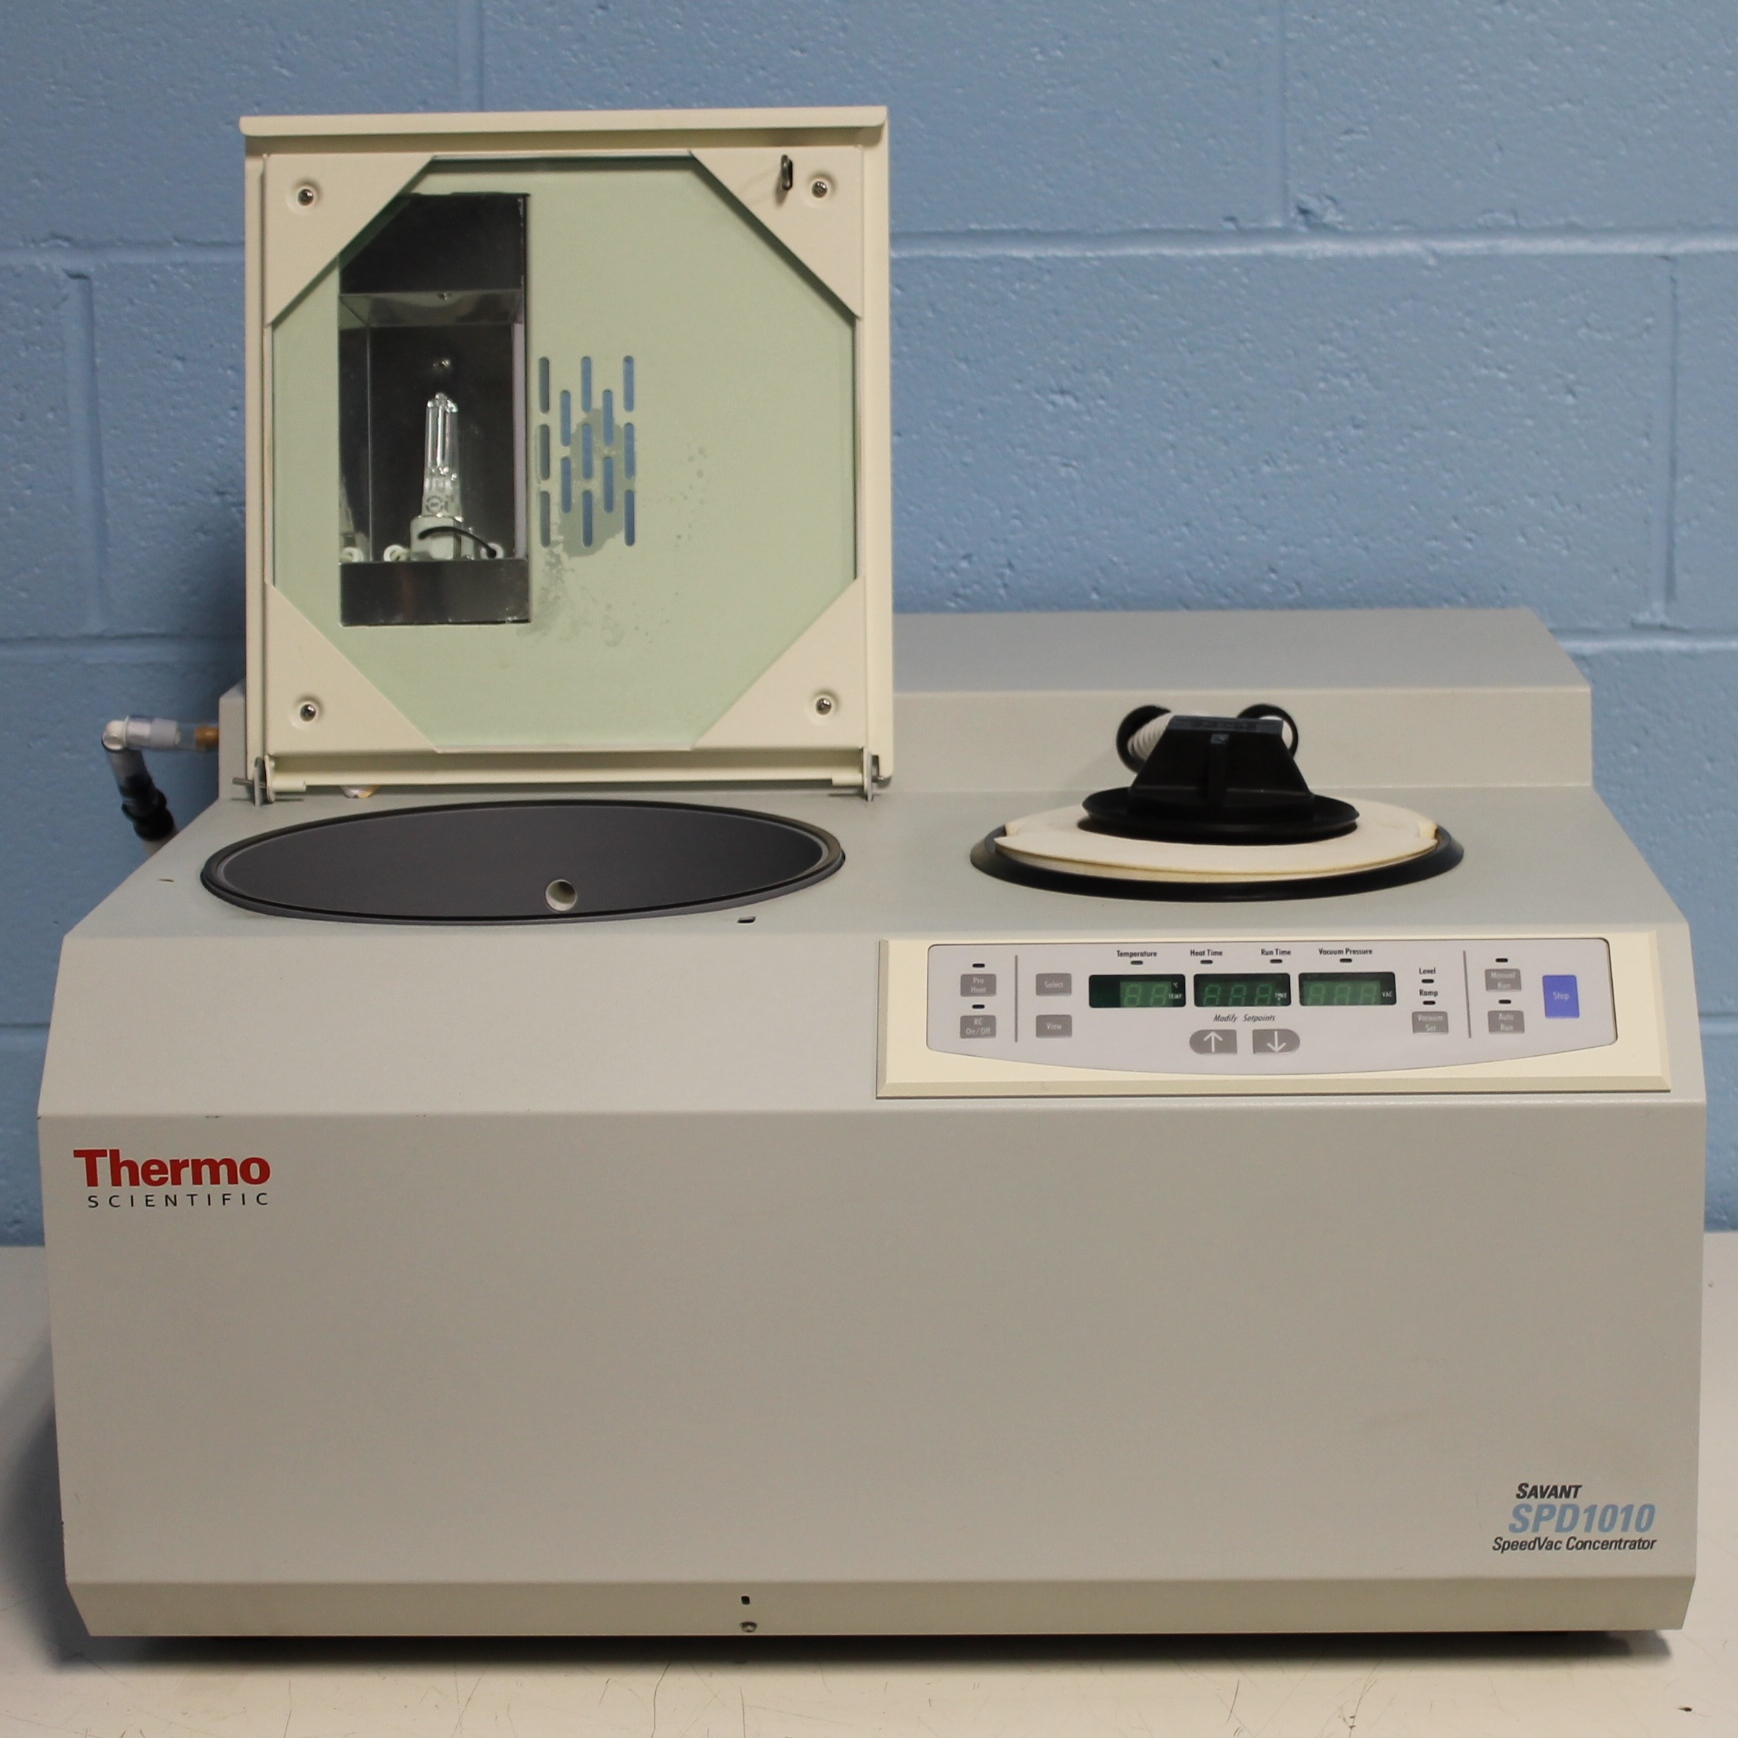 Thermo Scientific Savant SPD1010-115 SpeedVac Concentrator Image